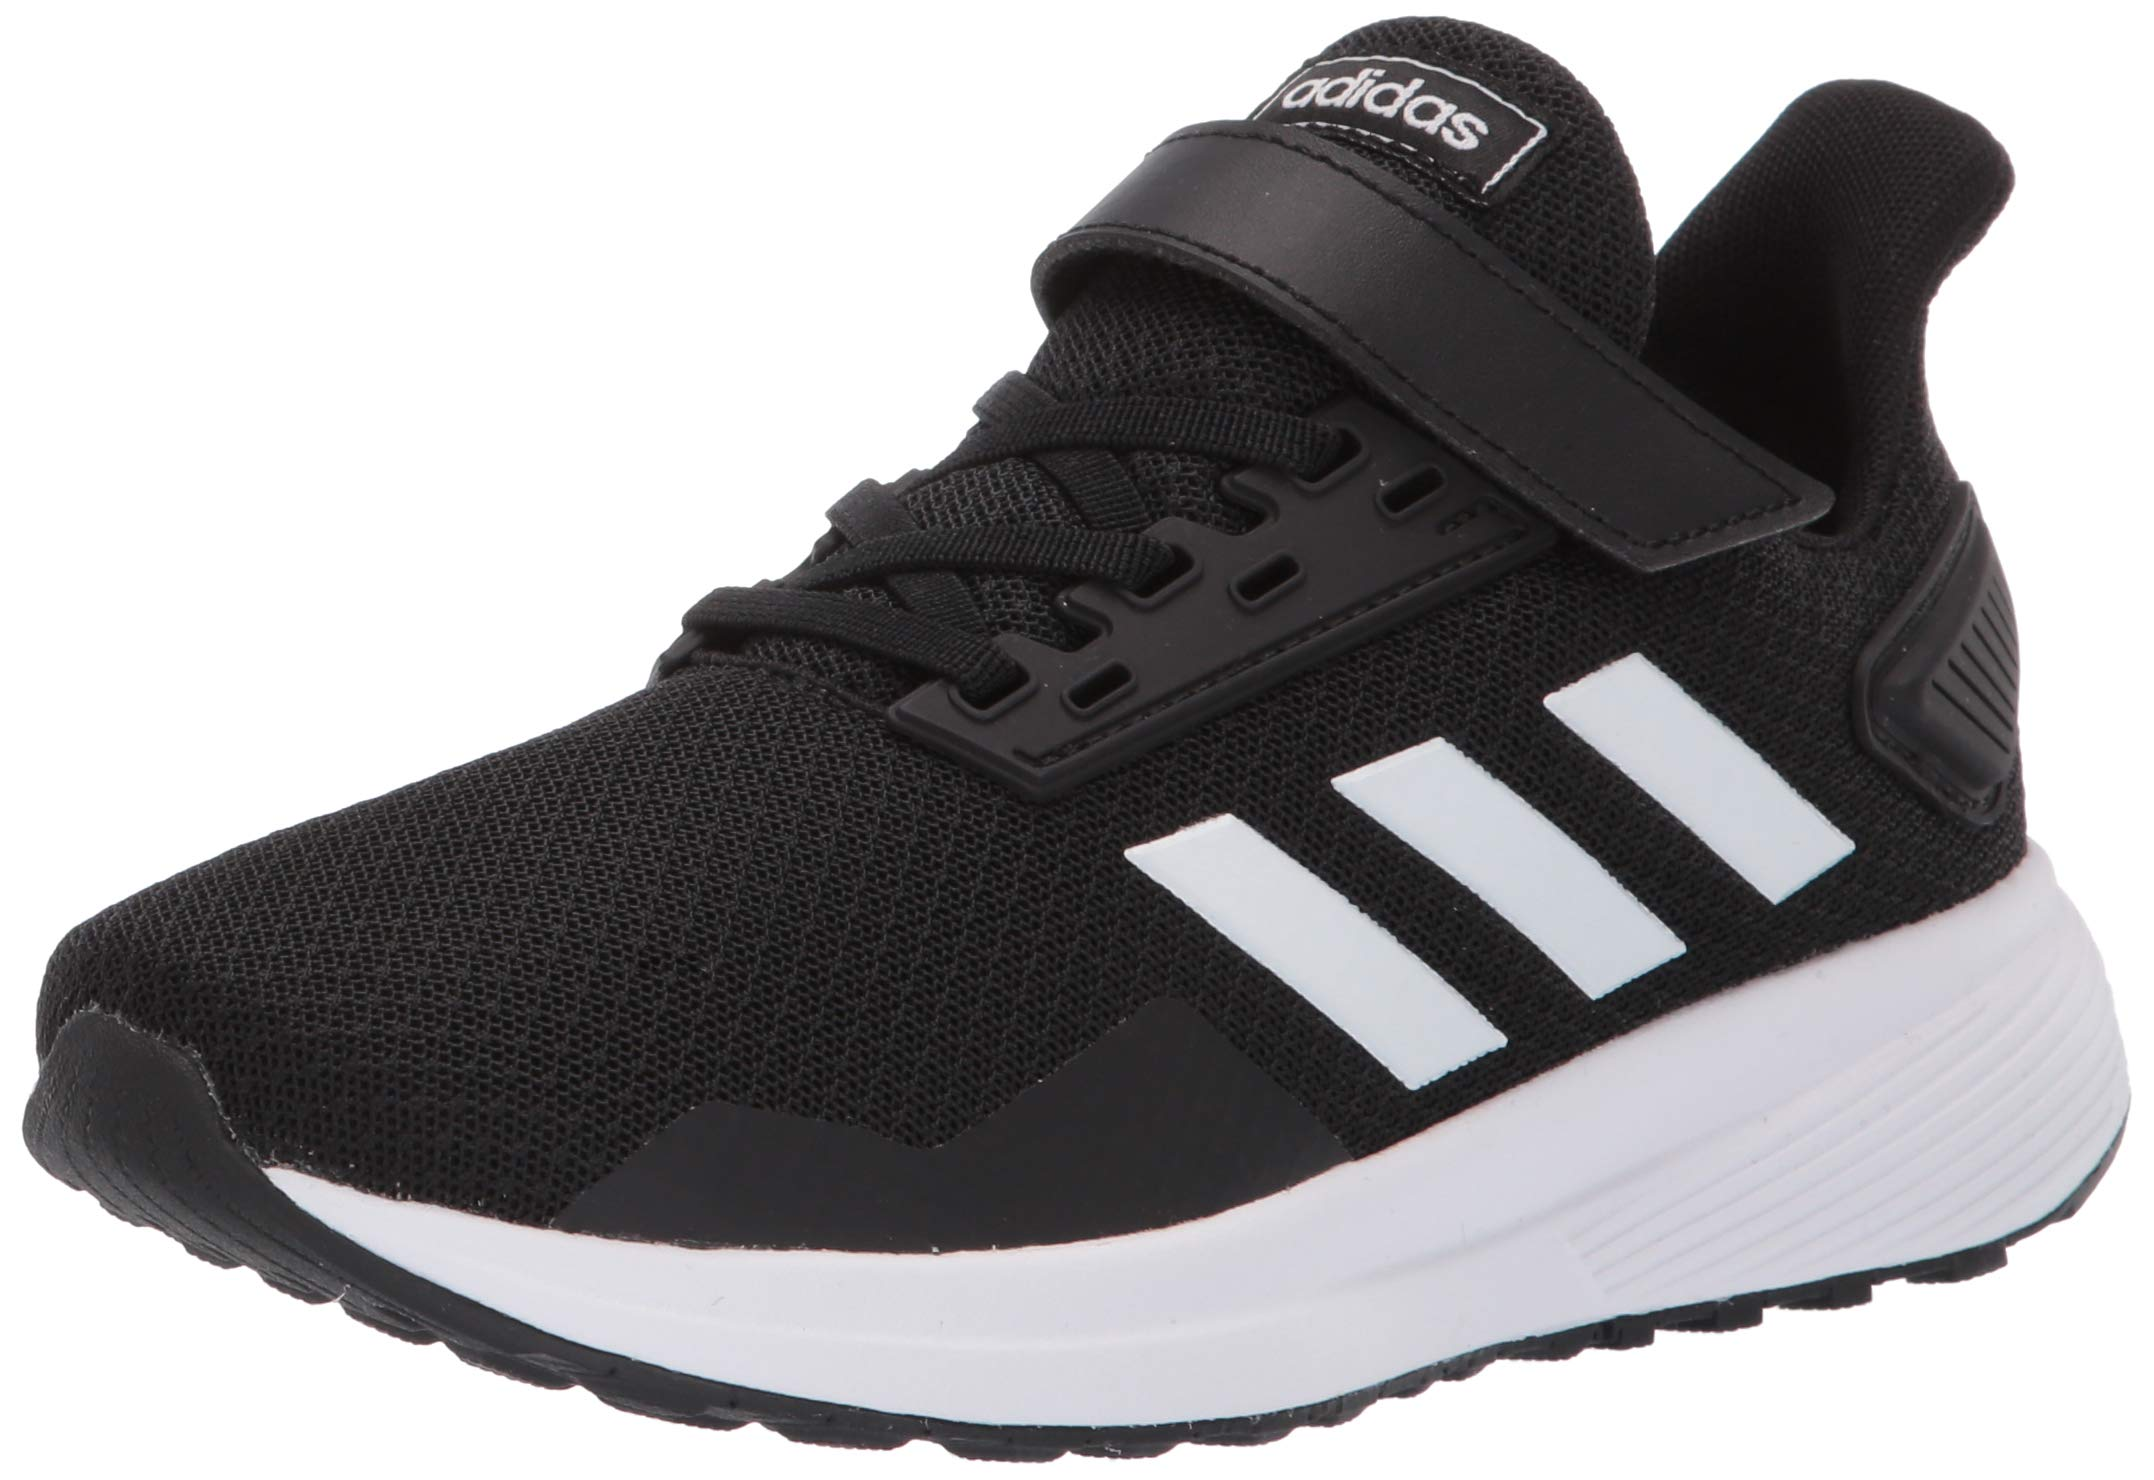 adidas Unisex Duramo 9 Running Shoe, White/Black, 11.5K M US Little Kid